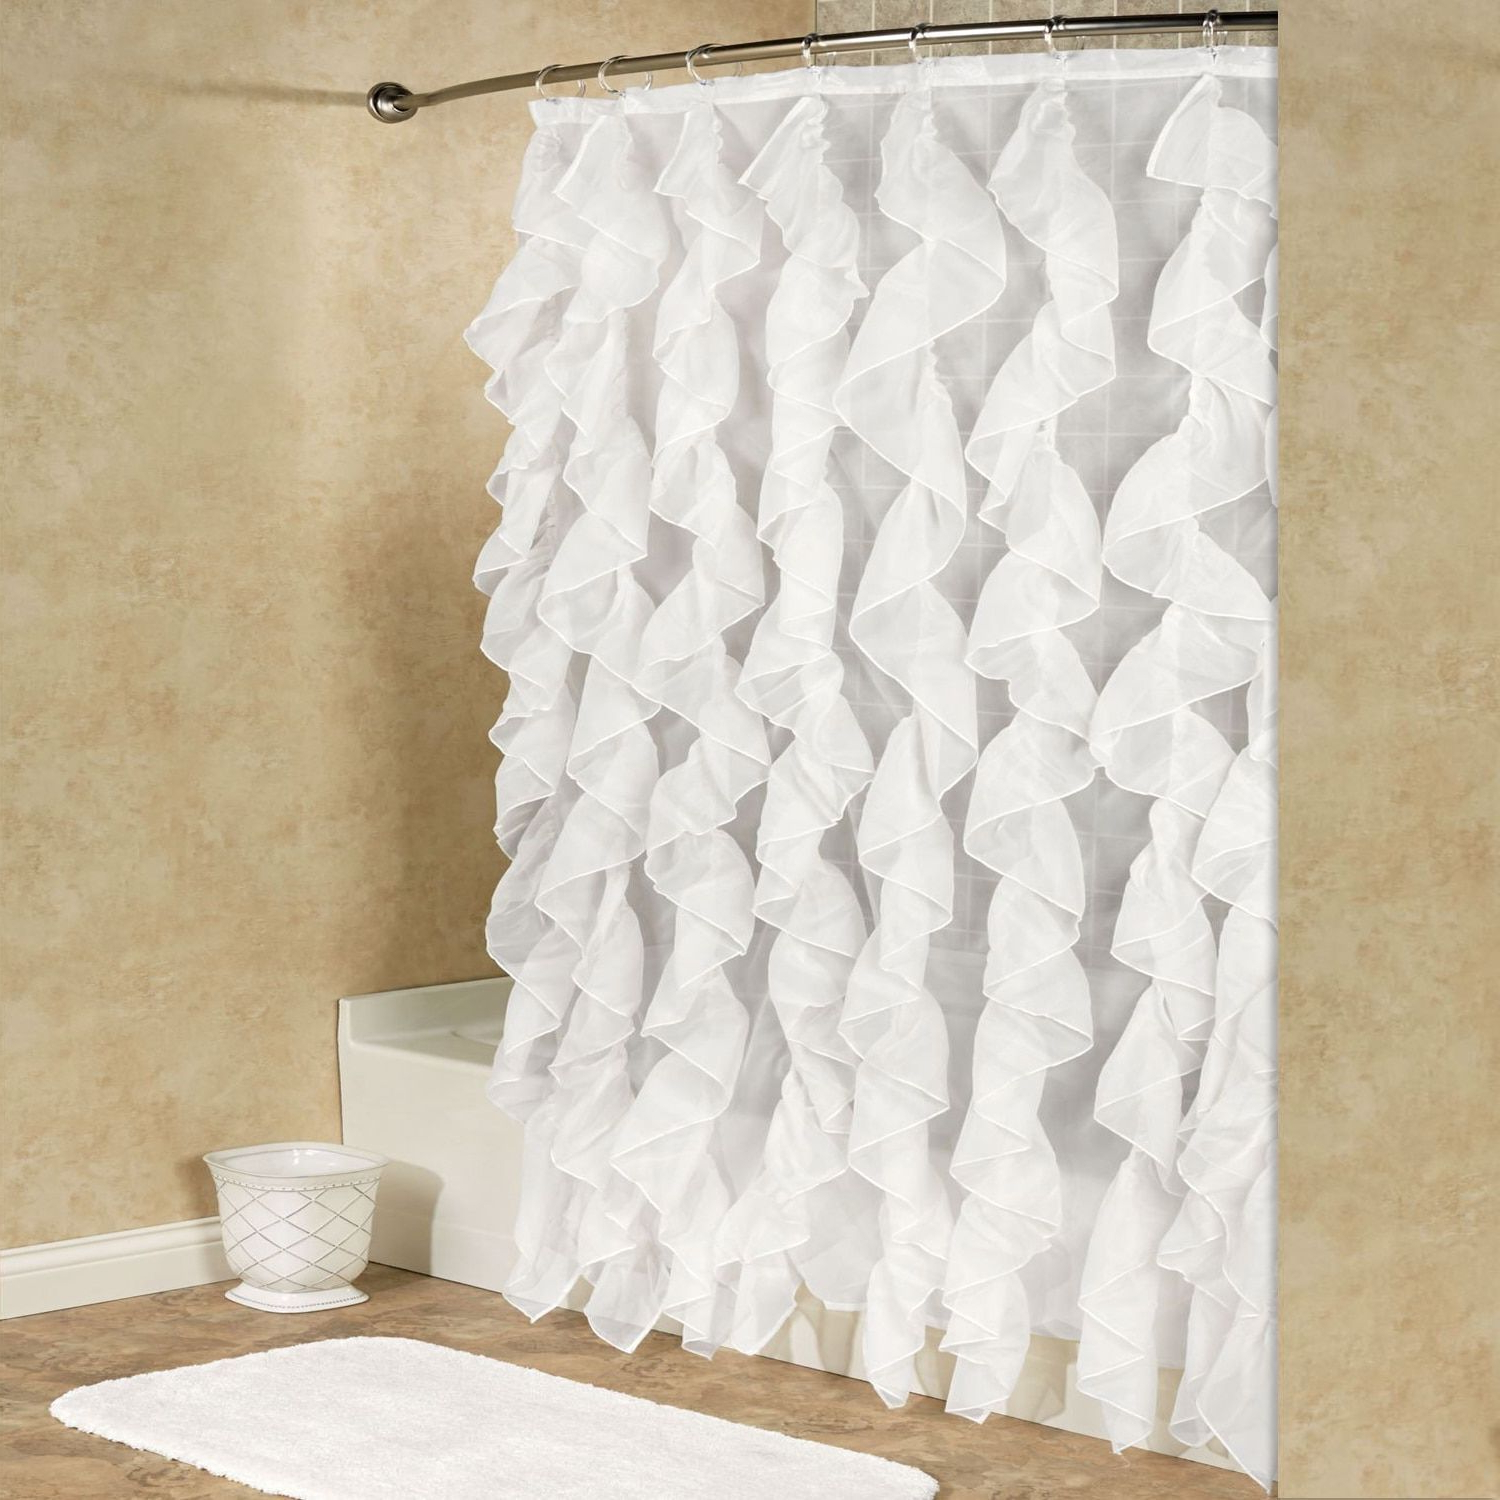 Chic Sheer Voile Vertical Waterfall Ruffled Shower Curtain Intended For Trendy Chic Sheer Voile Vertical Ruffled Window Curtain Tiers (View 11 of 20)